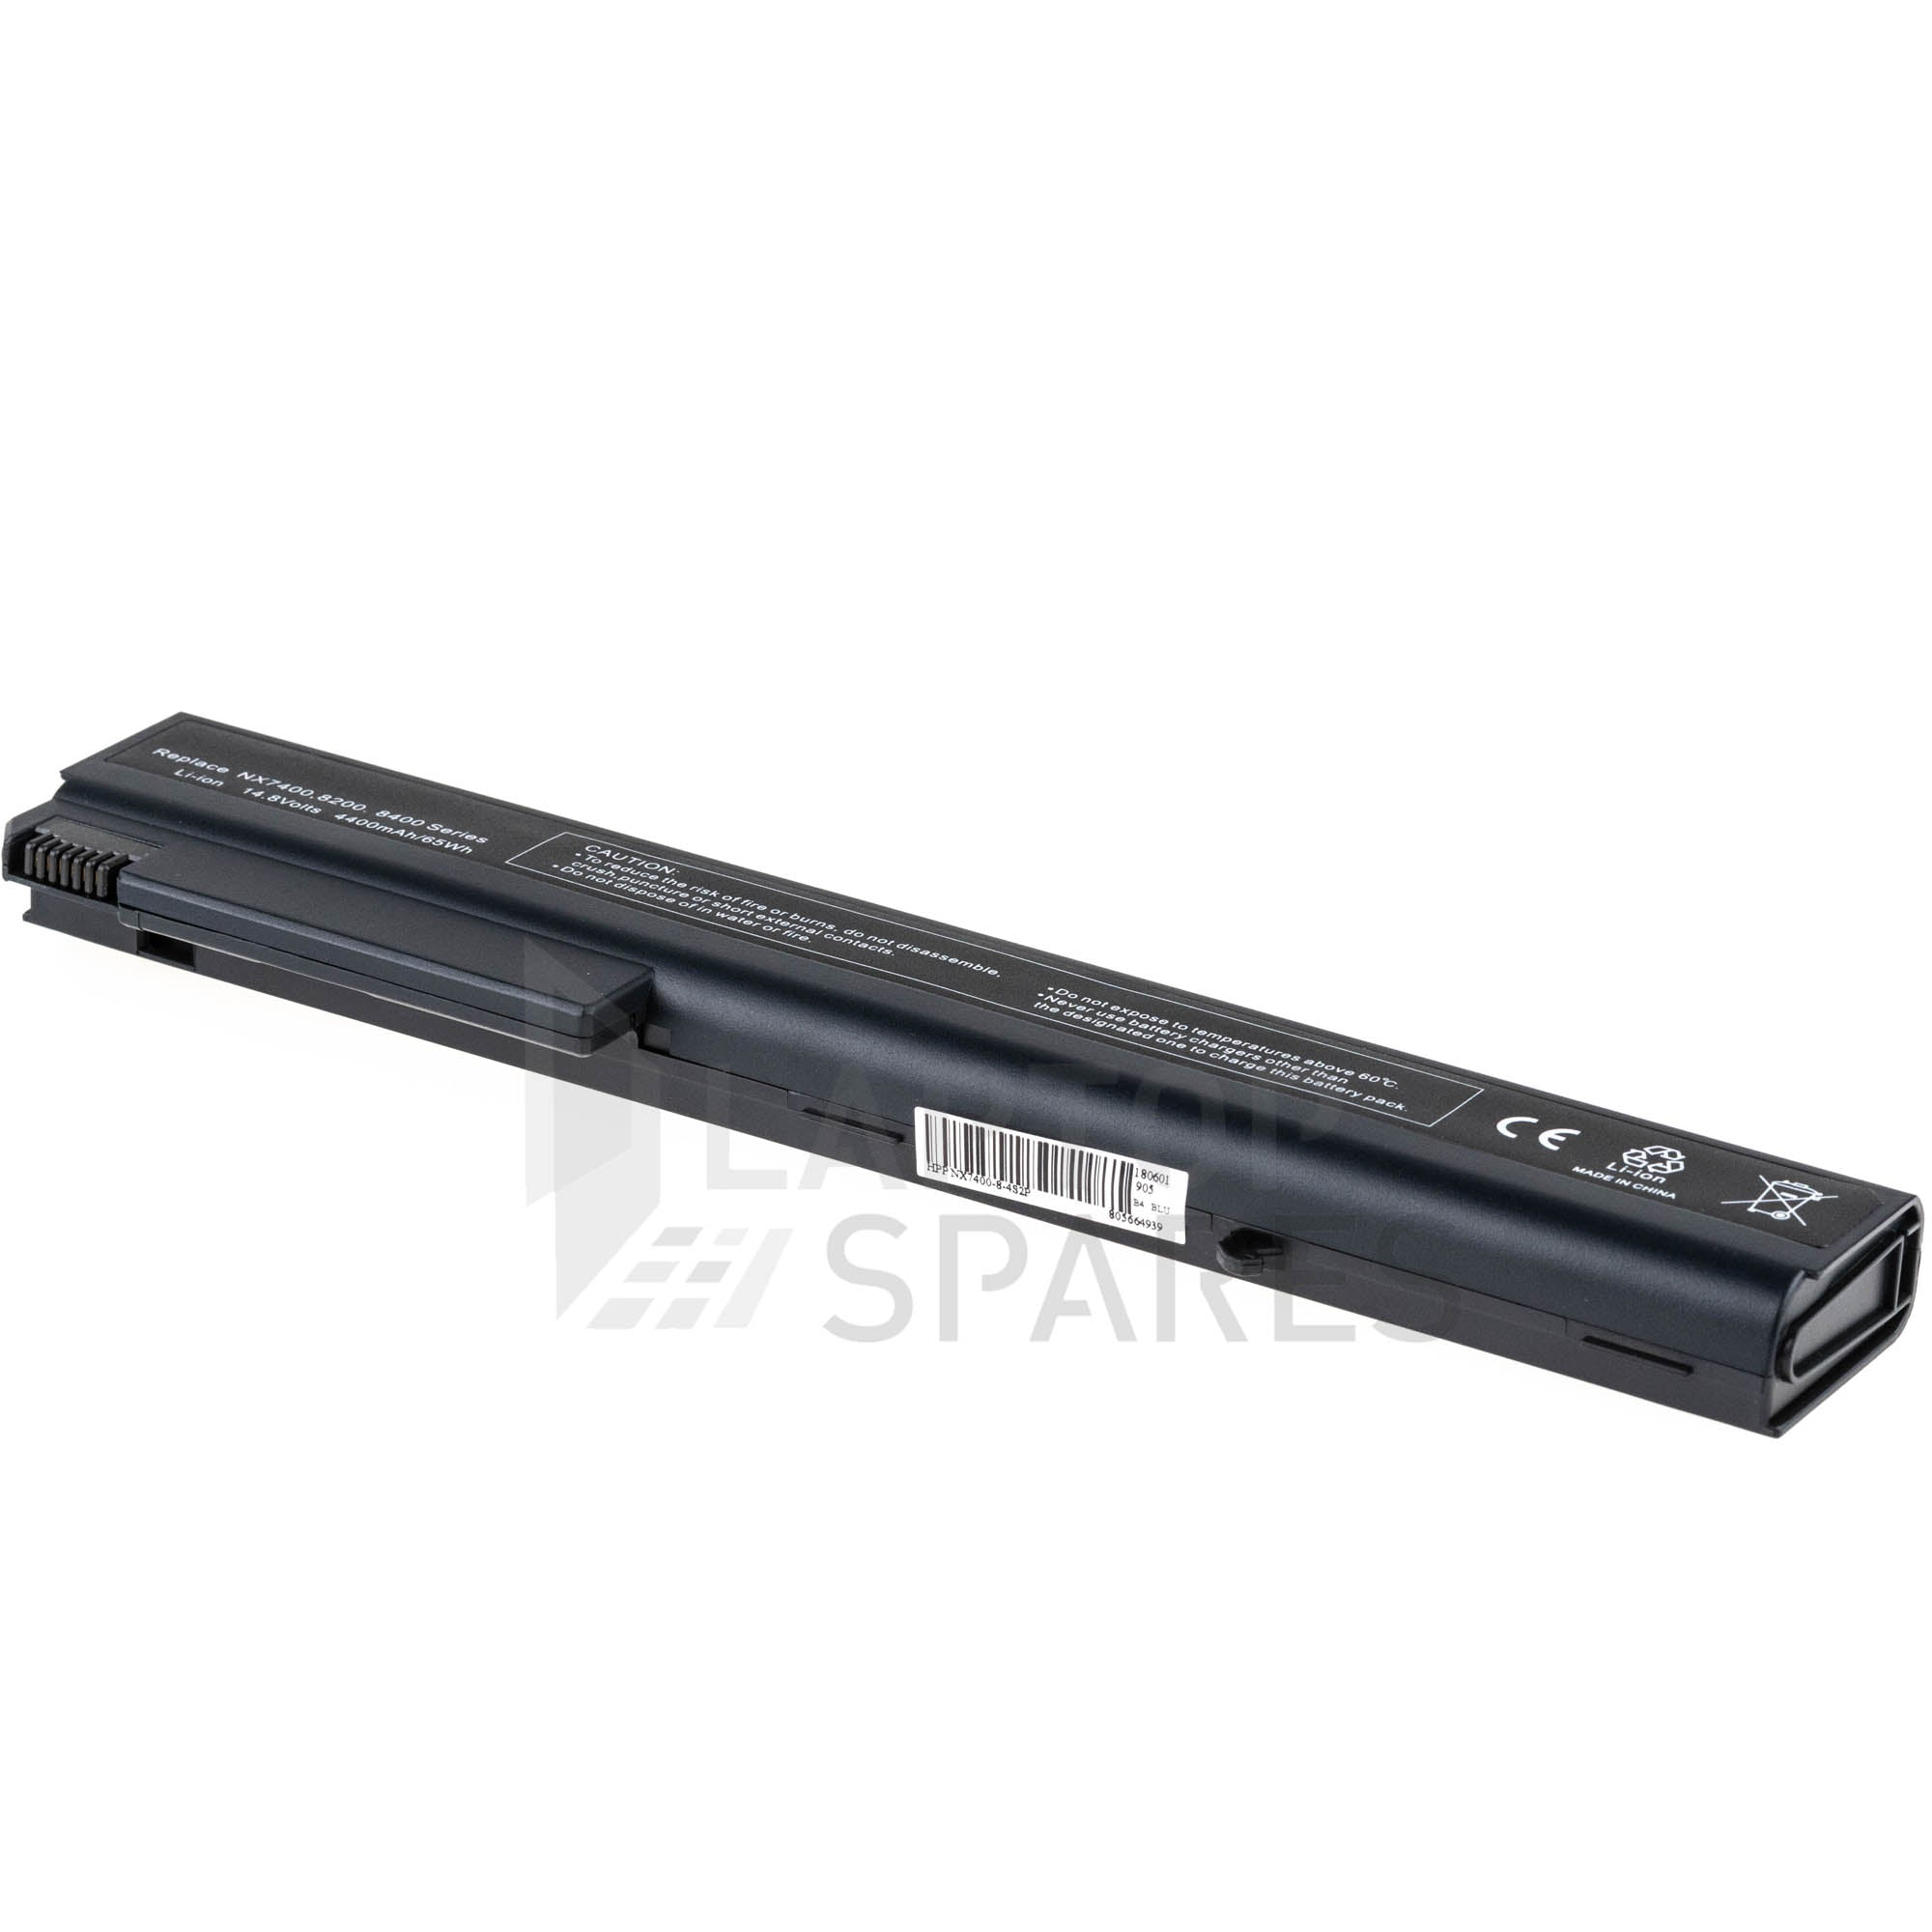 HP Compaq Business Notebook NX7300 4400mAh 8 Cell Battery